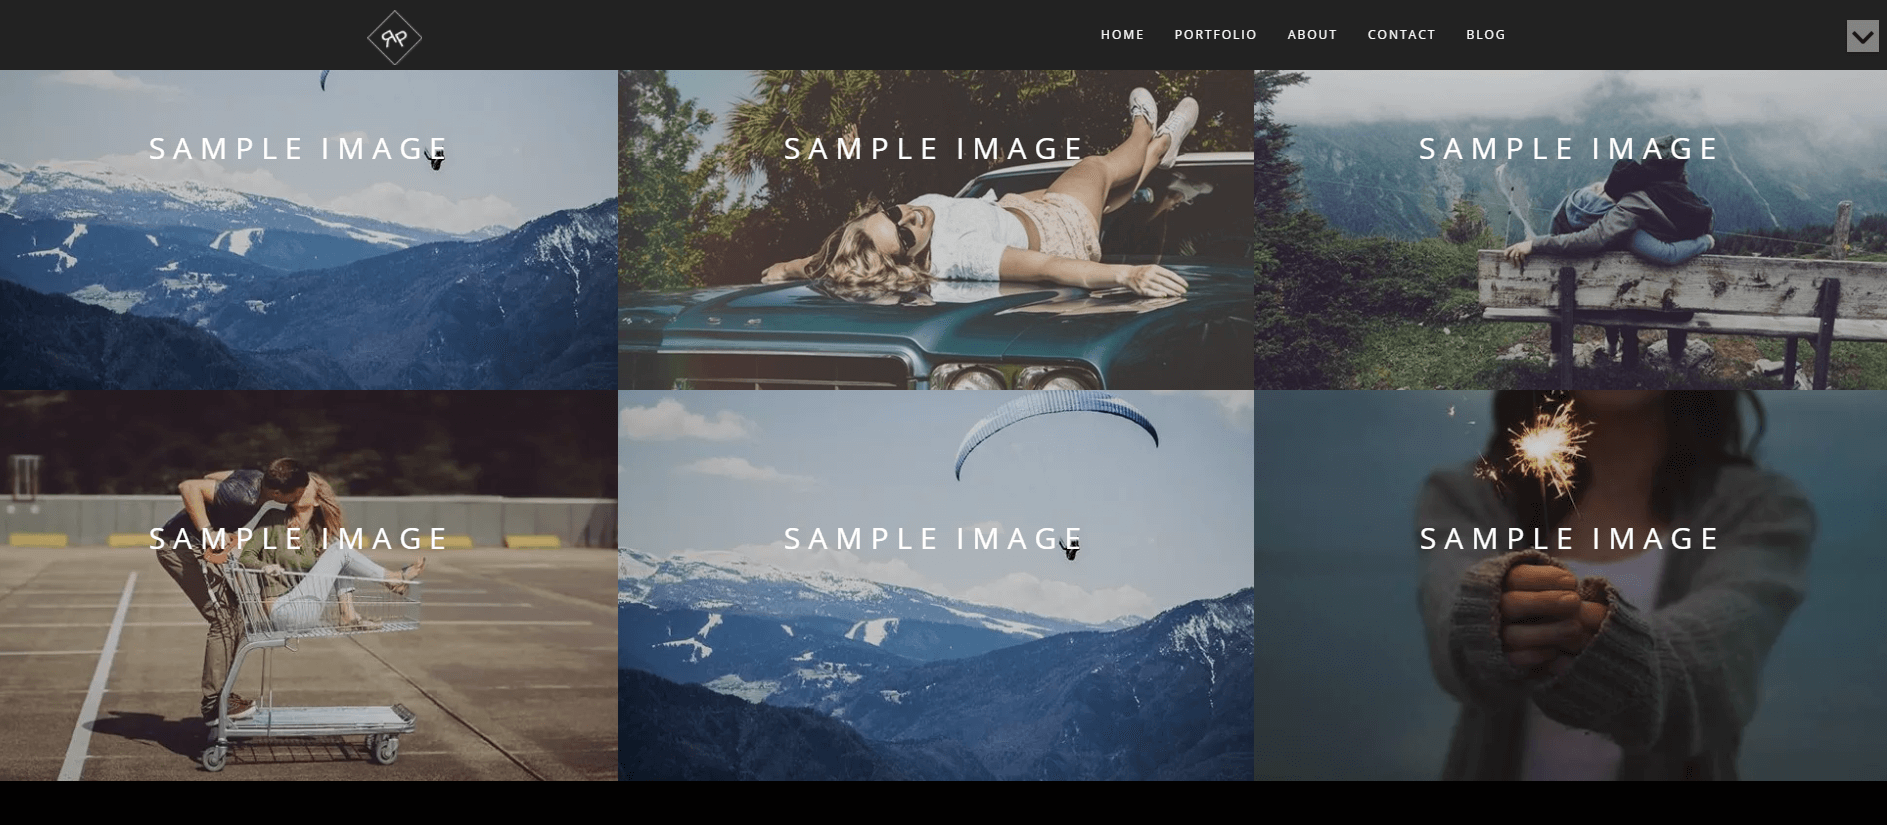 A WordPress photography website built with the Rokophoto theme.